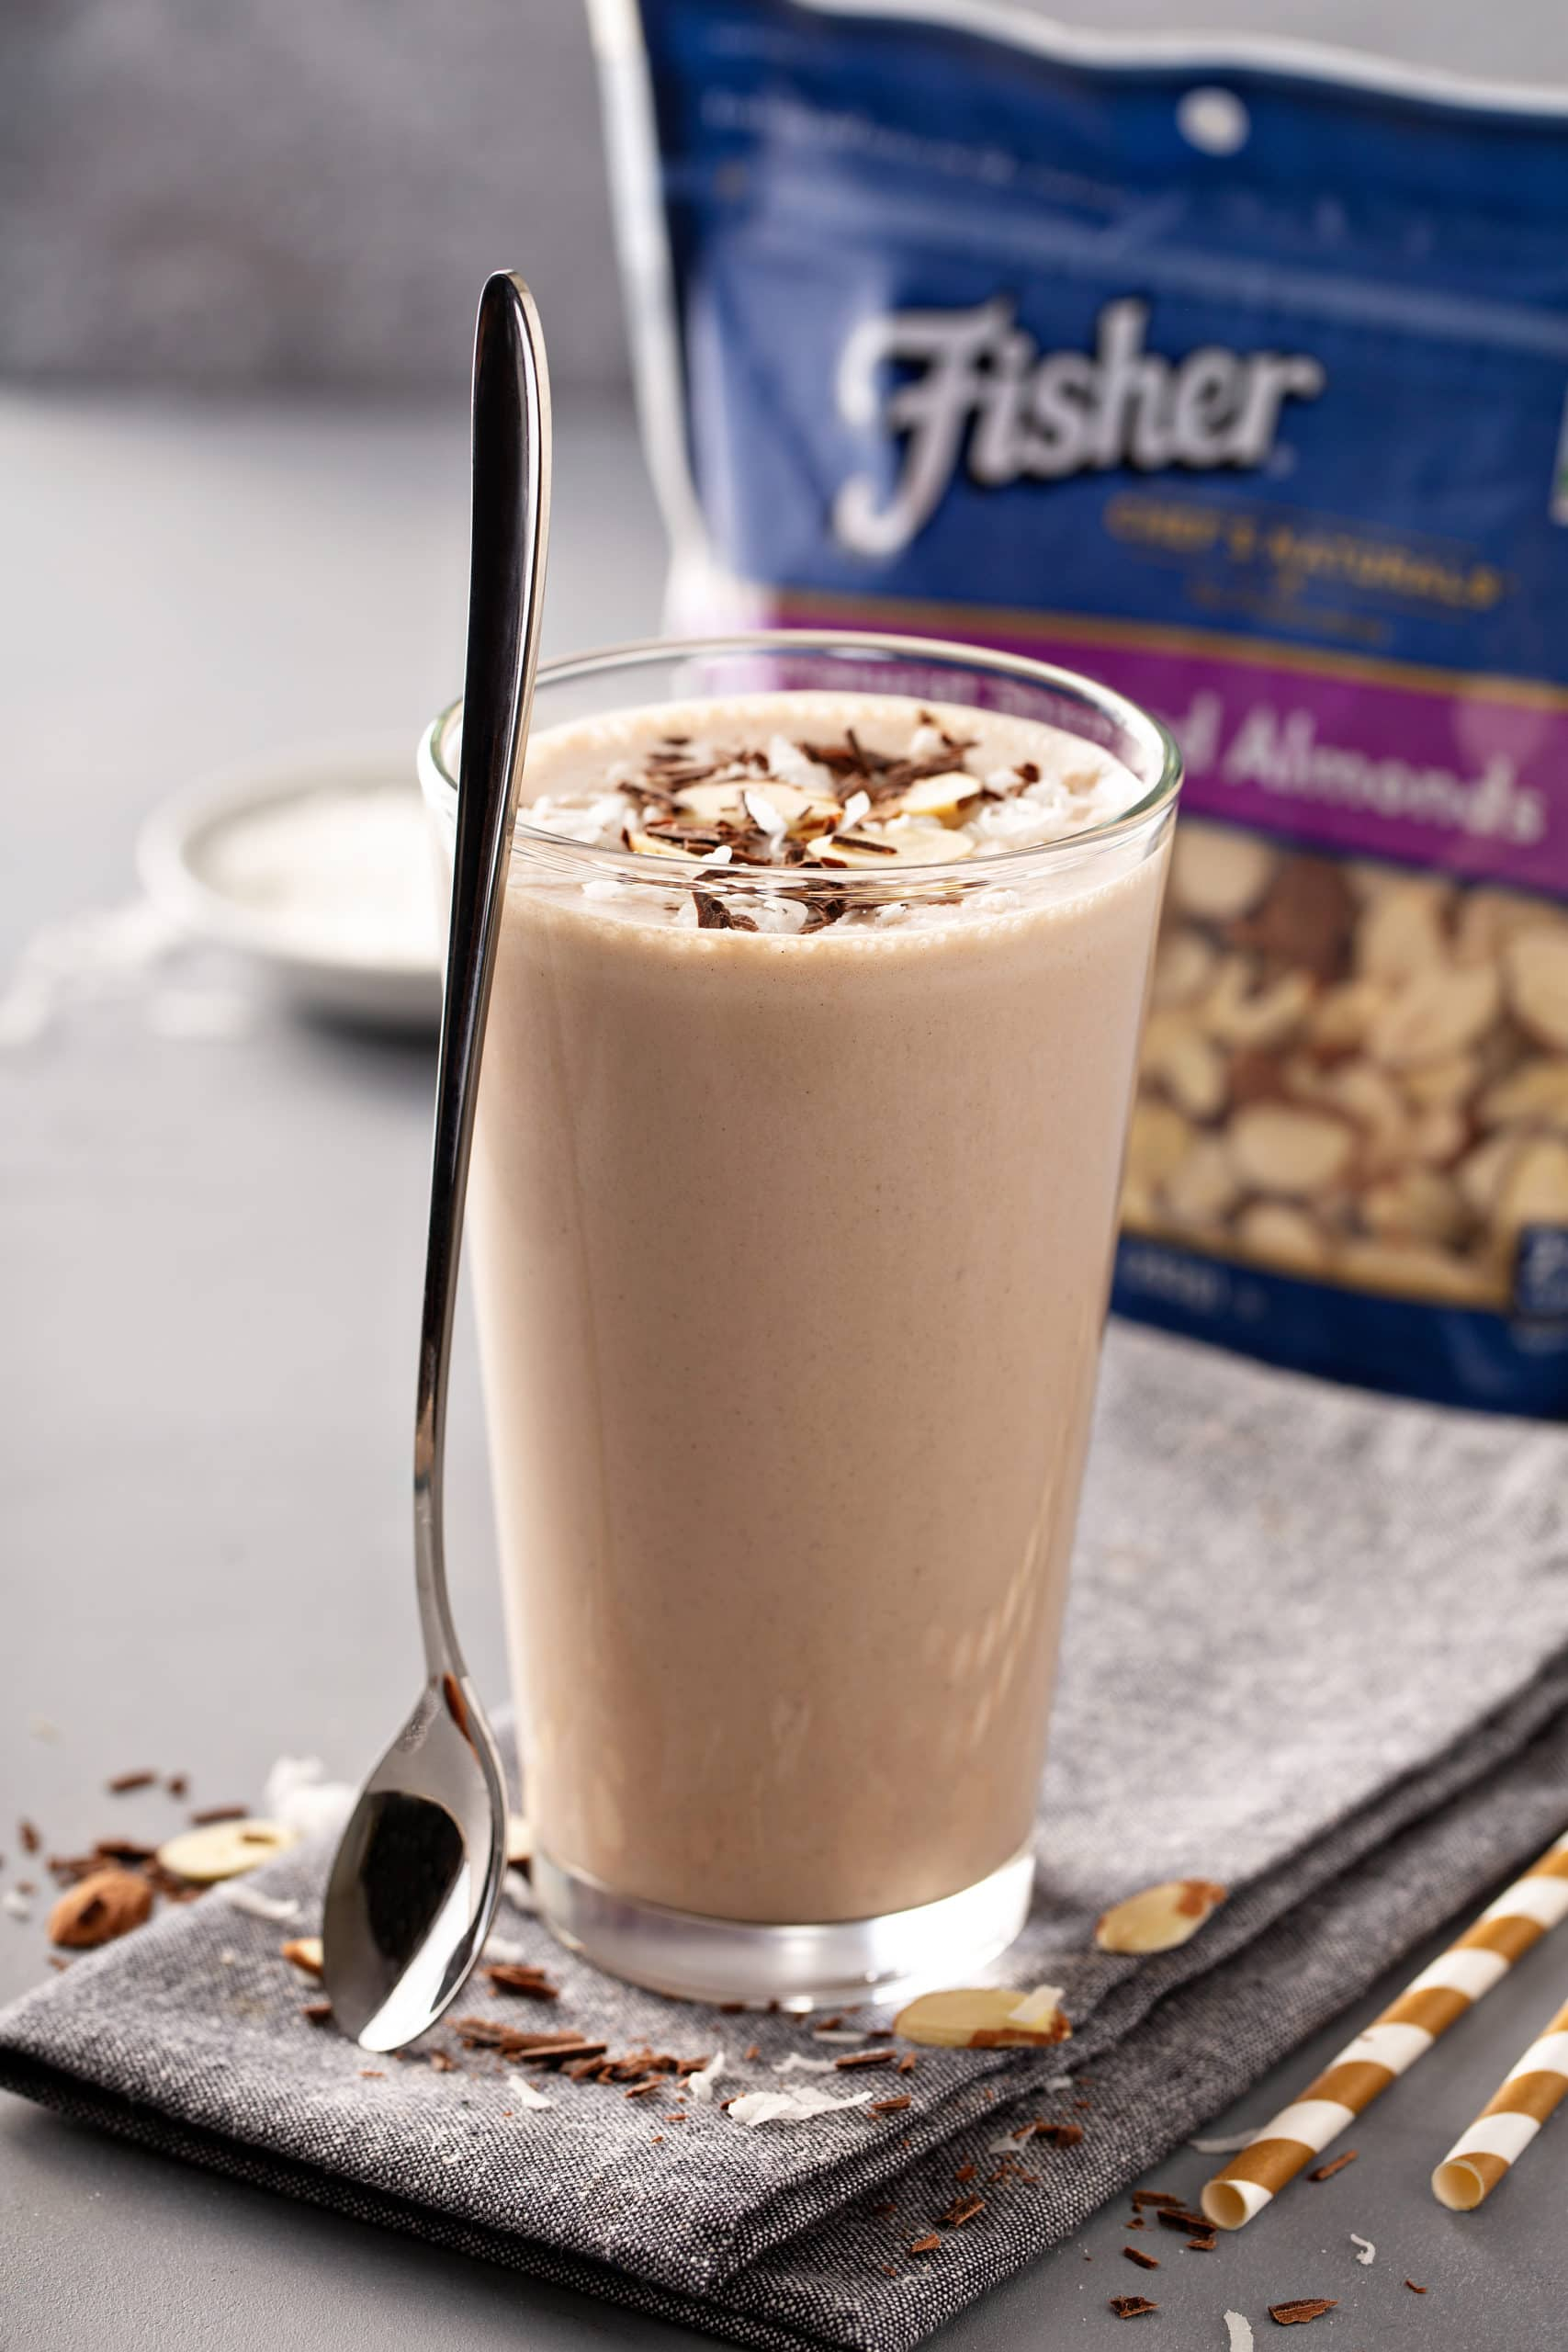 Tall glass of Almond Joy Chocolate Protein Shake with sliced almonds on top and a package of Fisher's Sliced almonds in the background